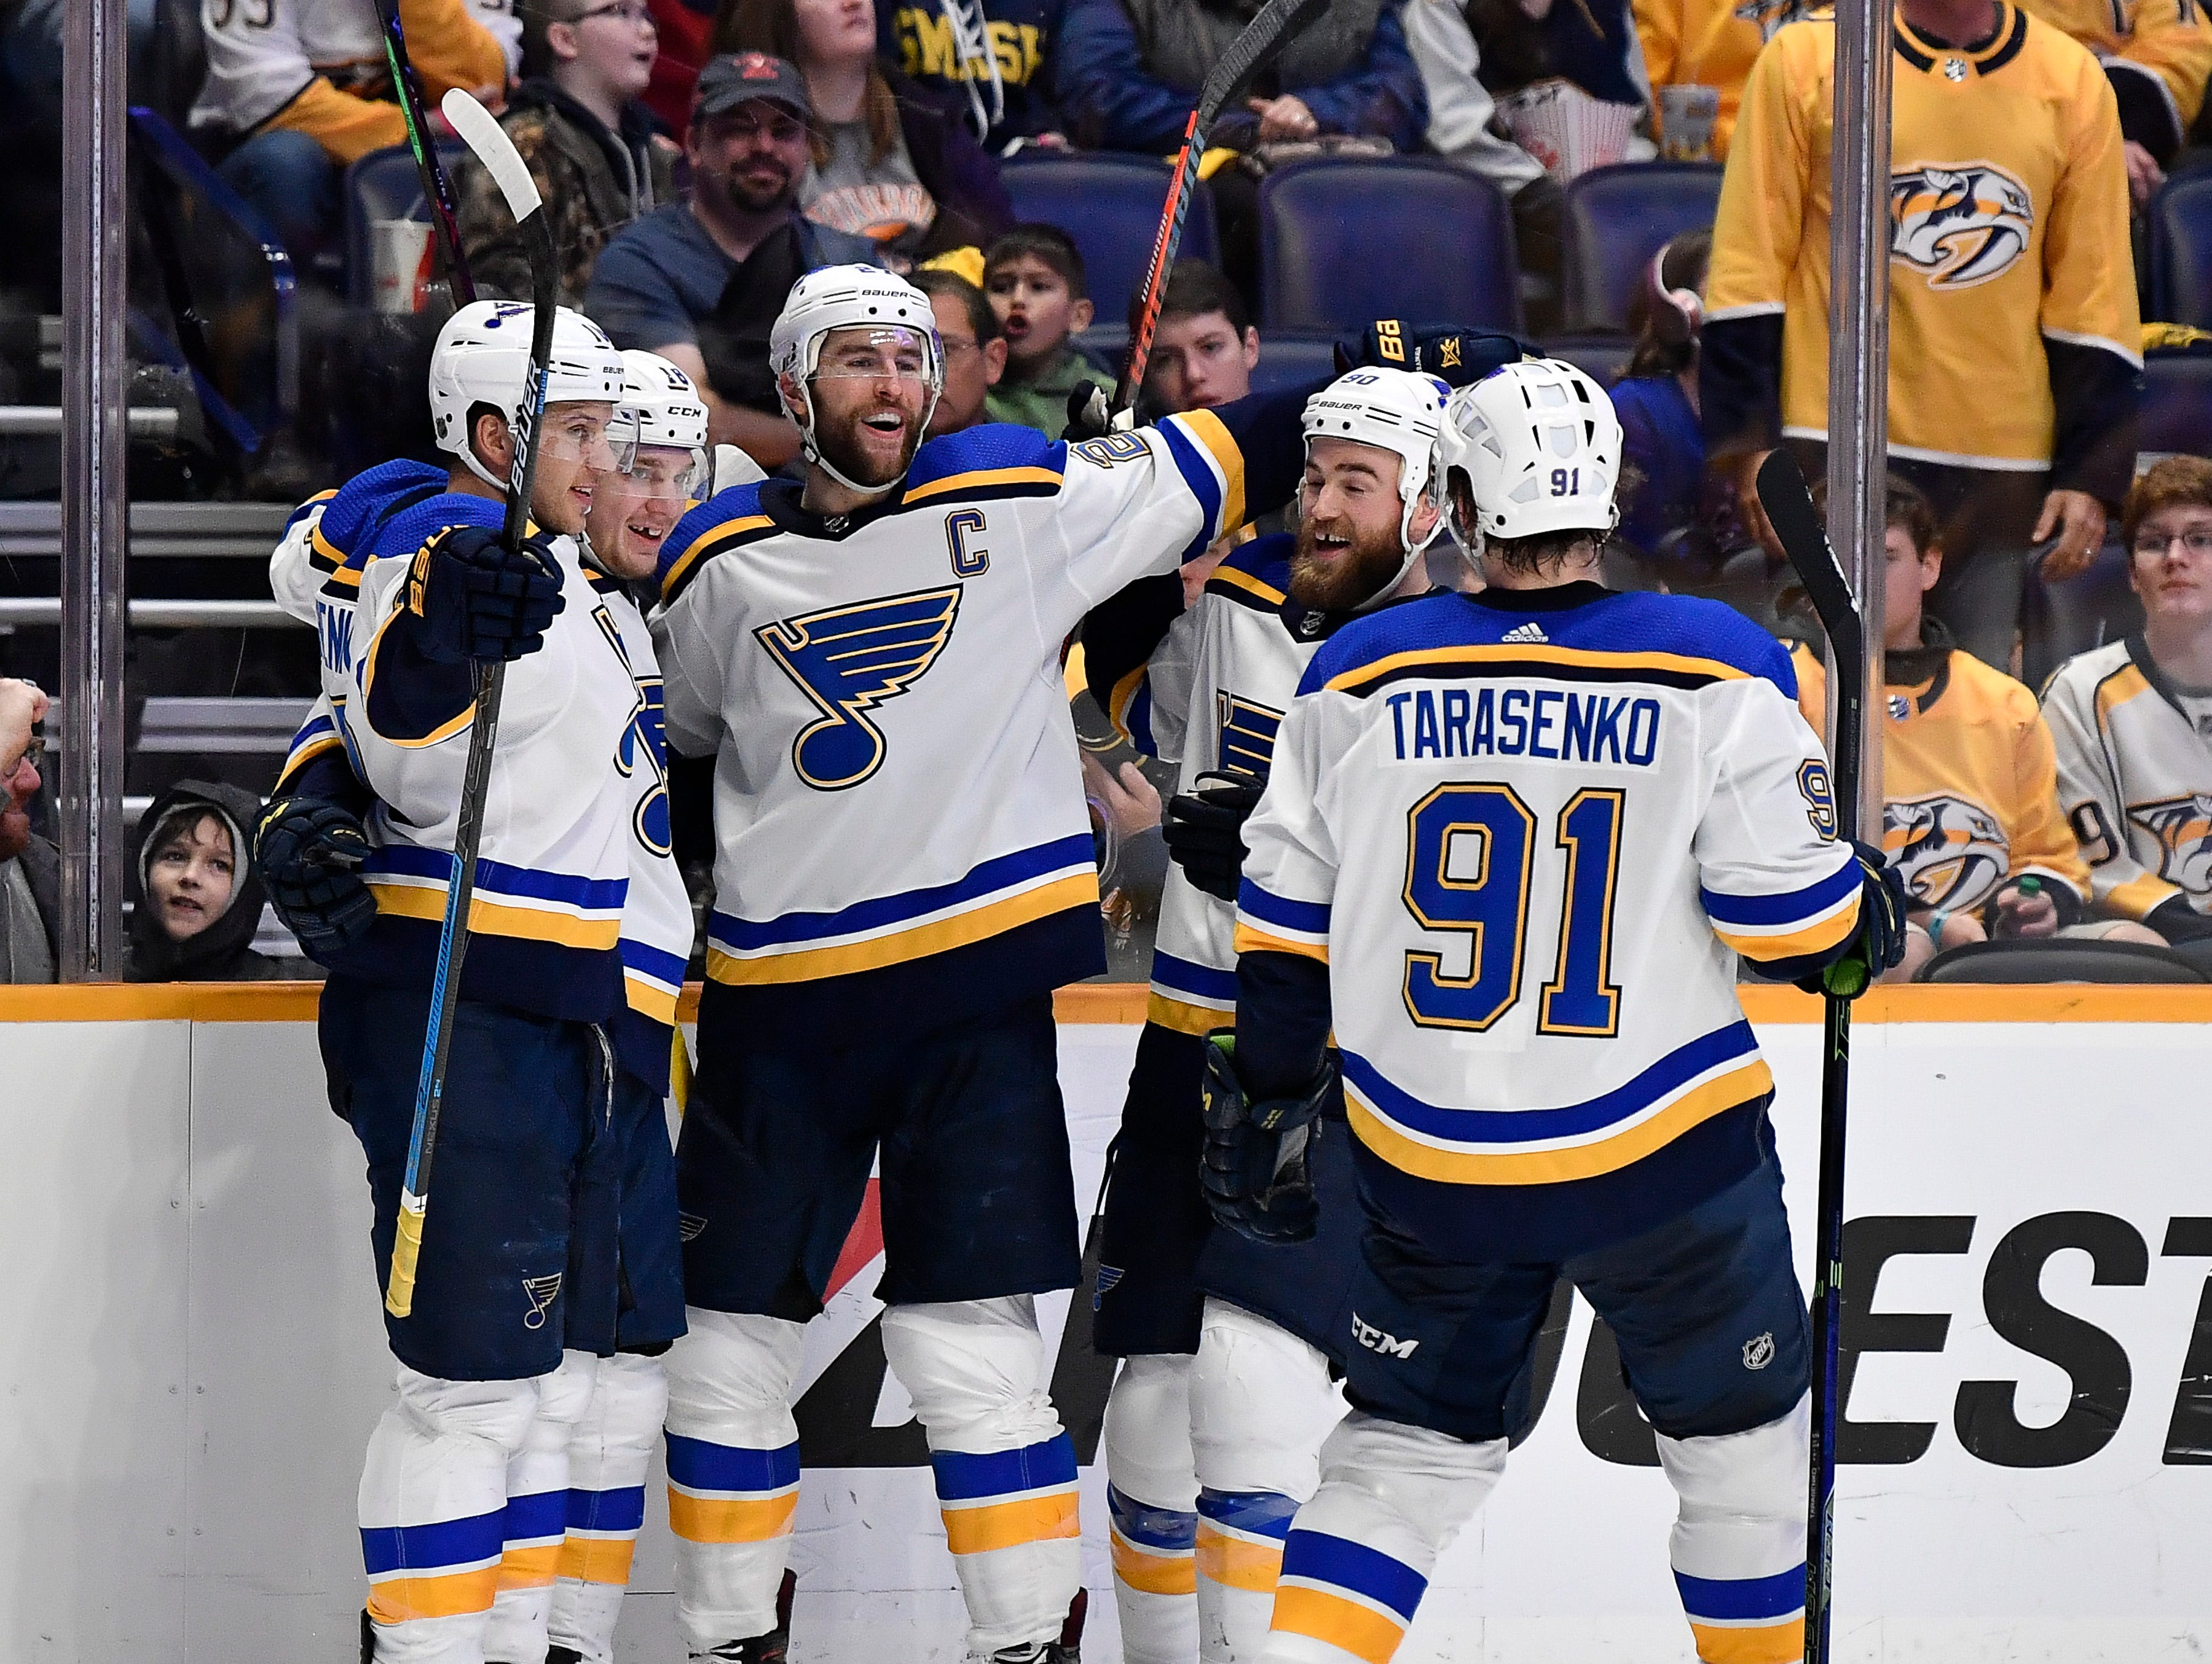 Blues celebrate a goal during the second period against the Predators at Bridgestone Arena Sunday Feb. 10, 2019 in Nashville, Tenn.